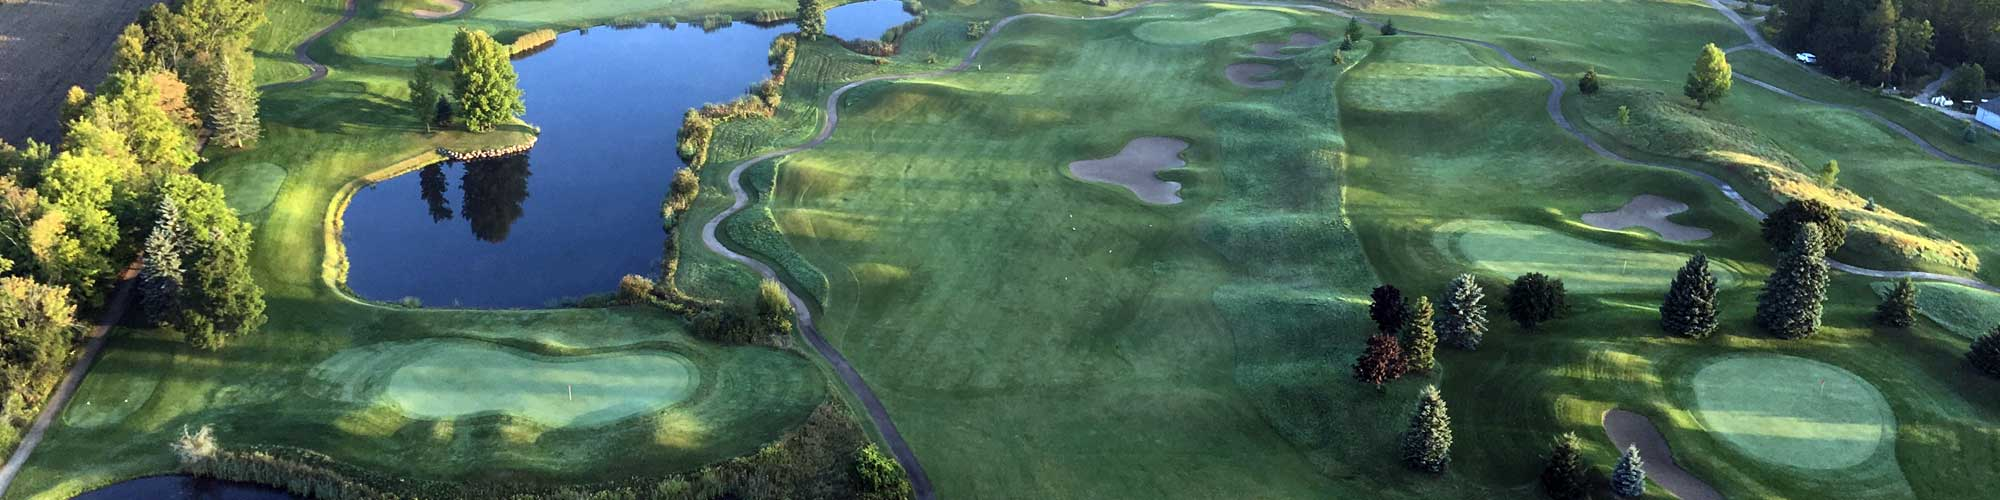 An Aerial view of the golf course.